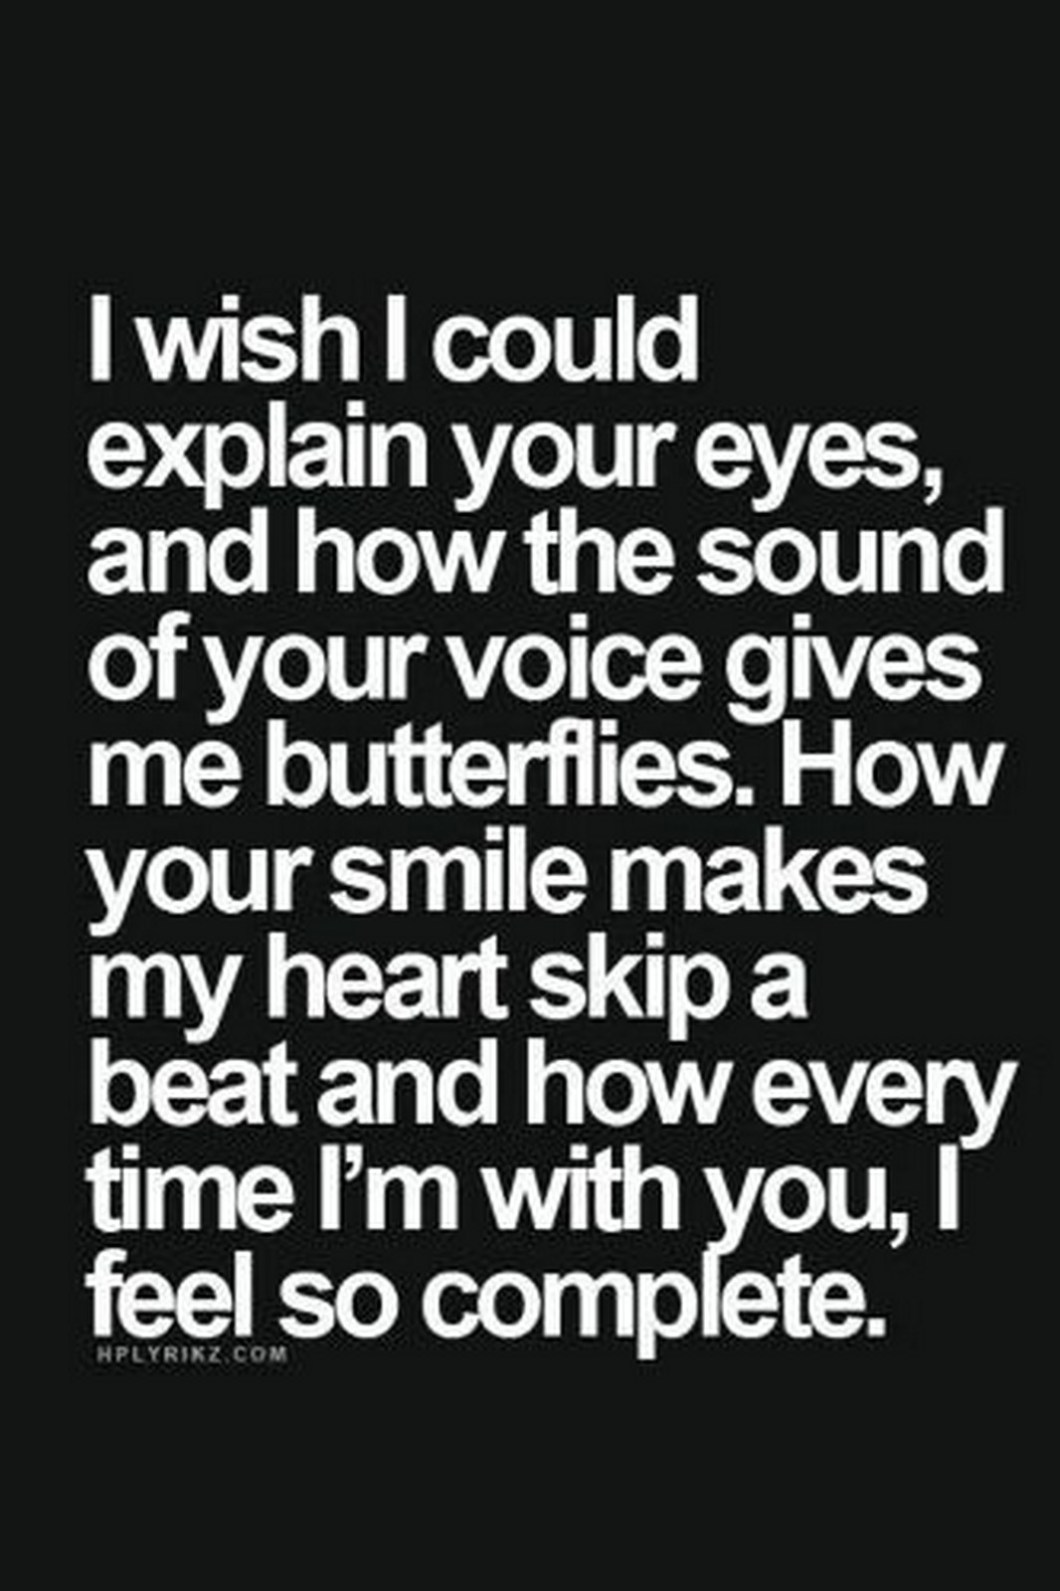 """55 Romantic Quotes - """"I wish I could explain your eyes, and how the sound of your voice gives me butterflies. How your smile makes my heart skip a beat and how every time I'm with you, I feel so complete."""""""